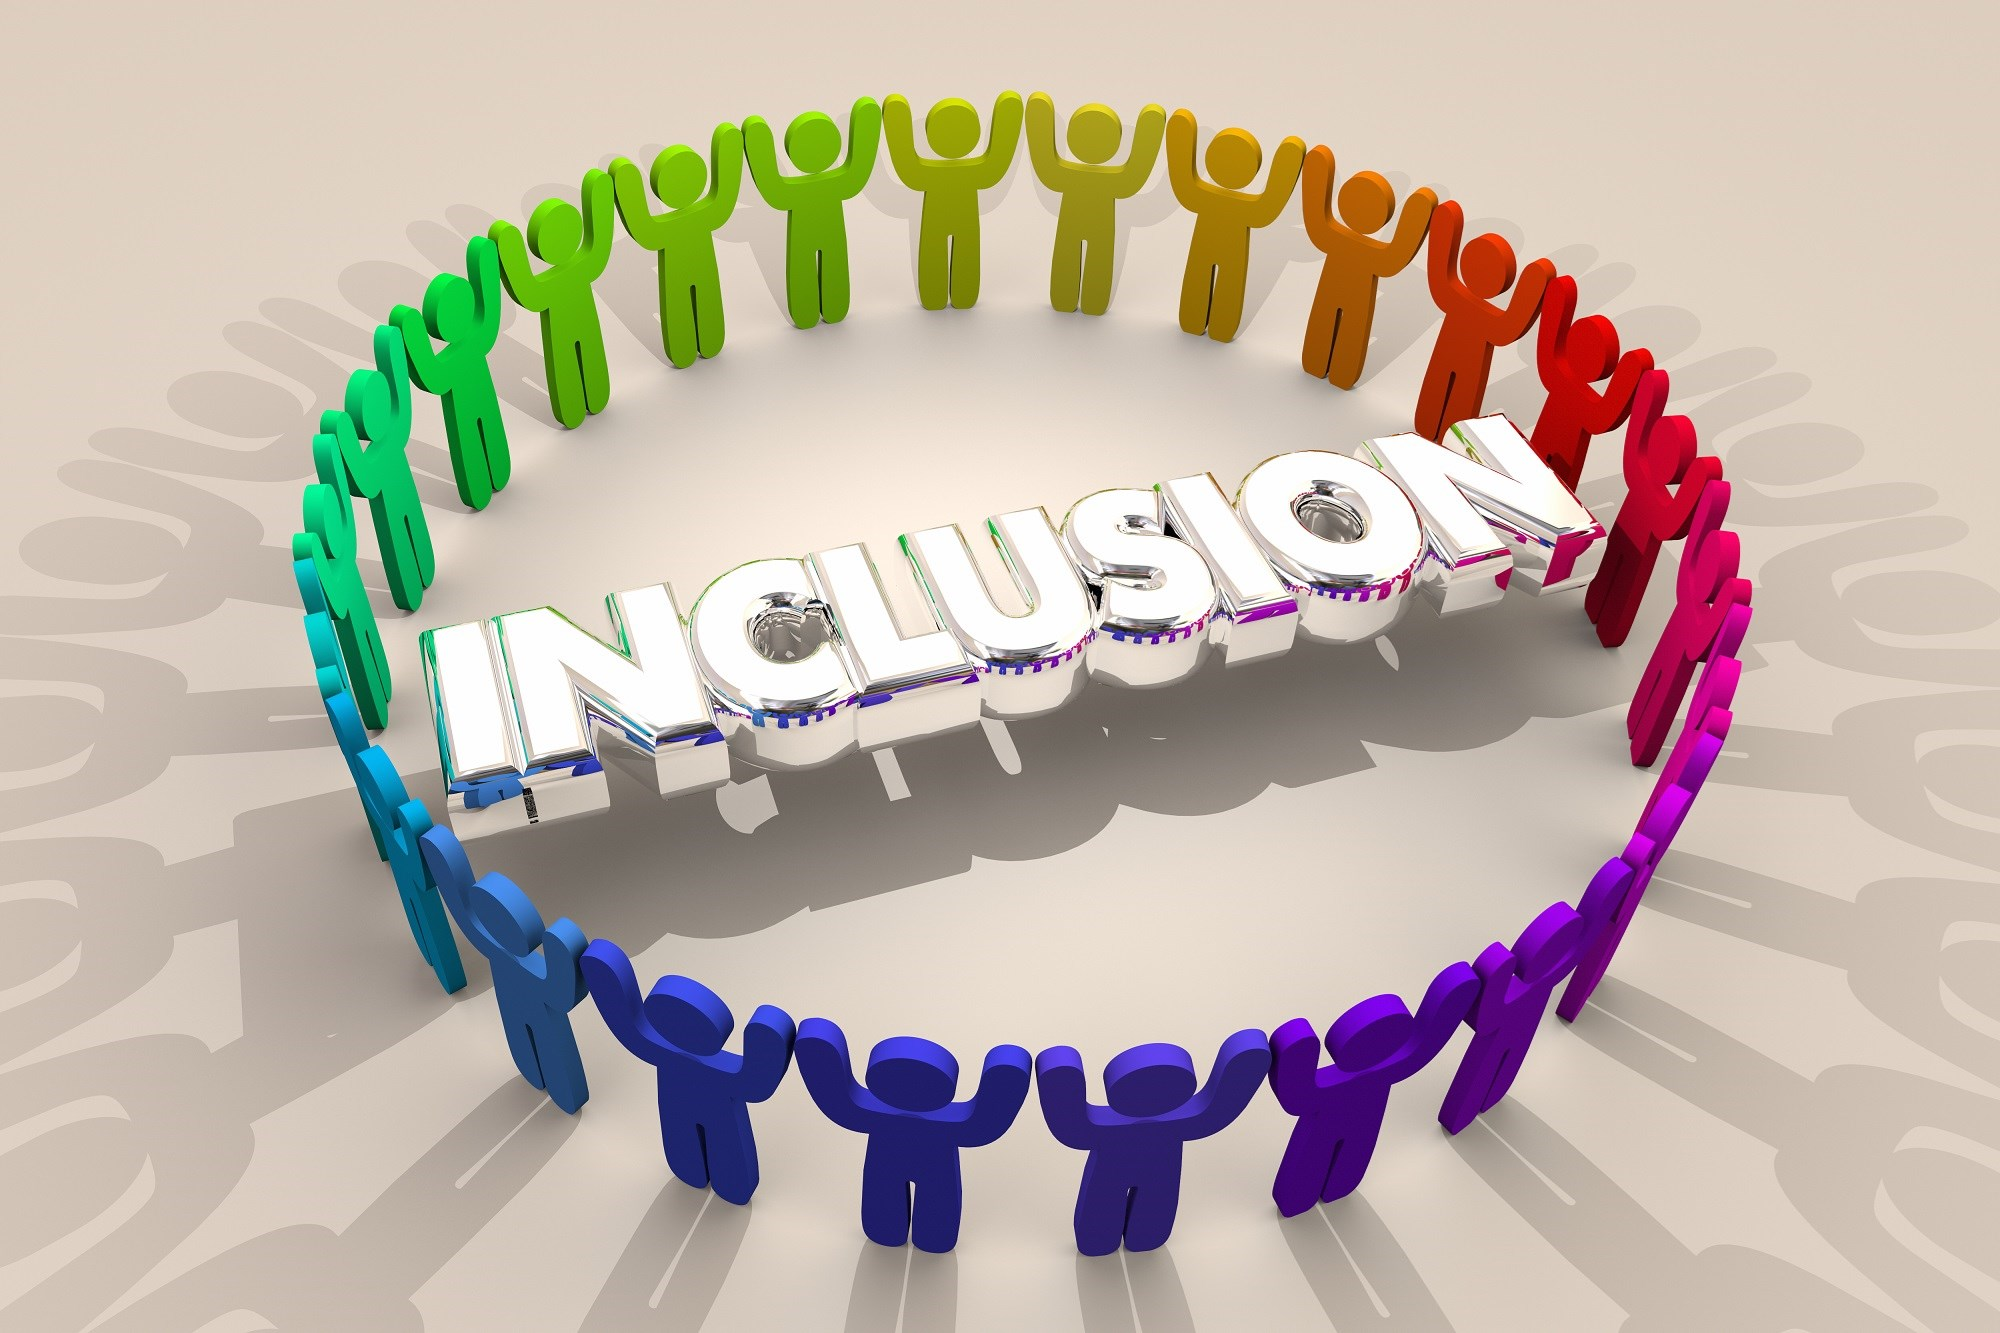 There are six broad factors that can affect inclusion within health care organizations.